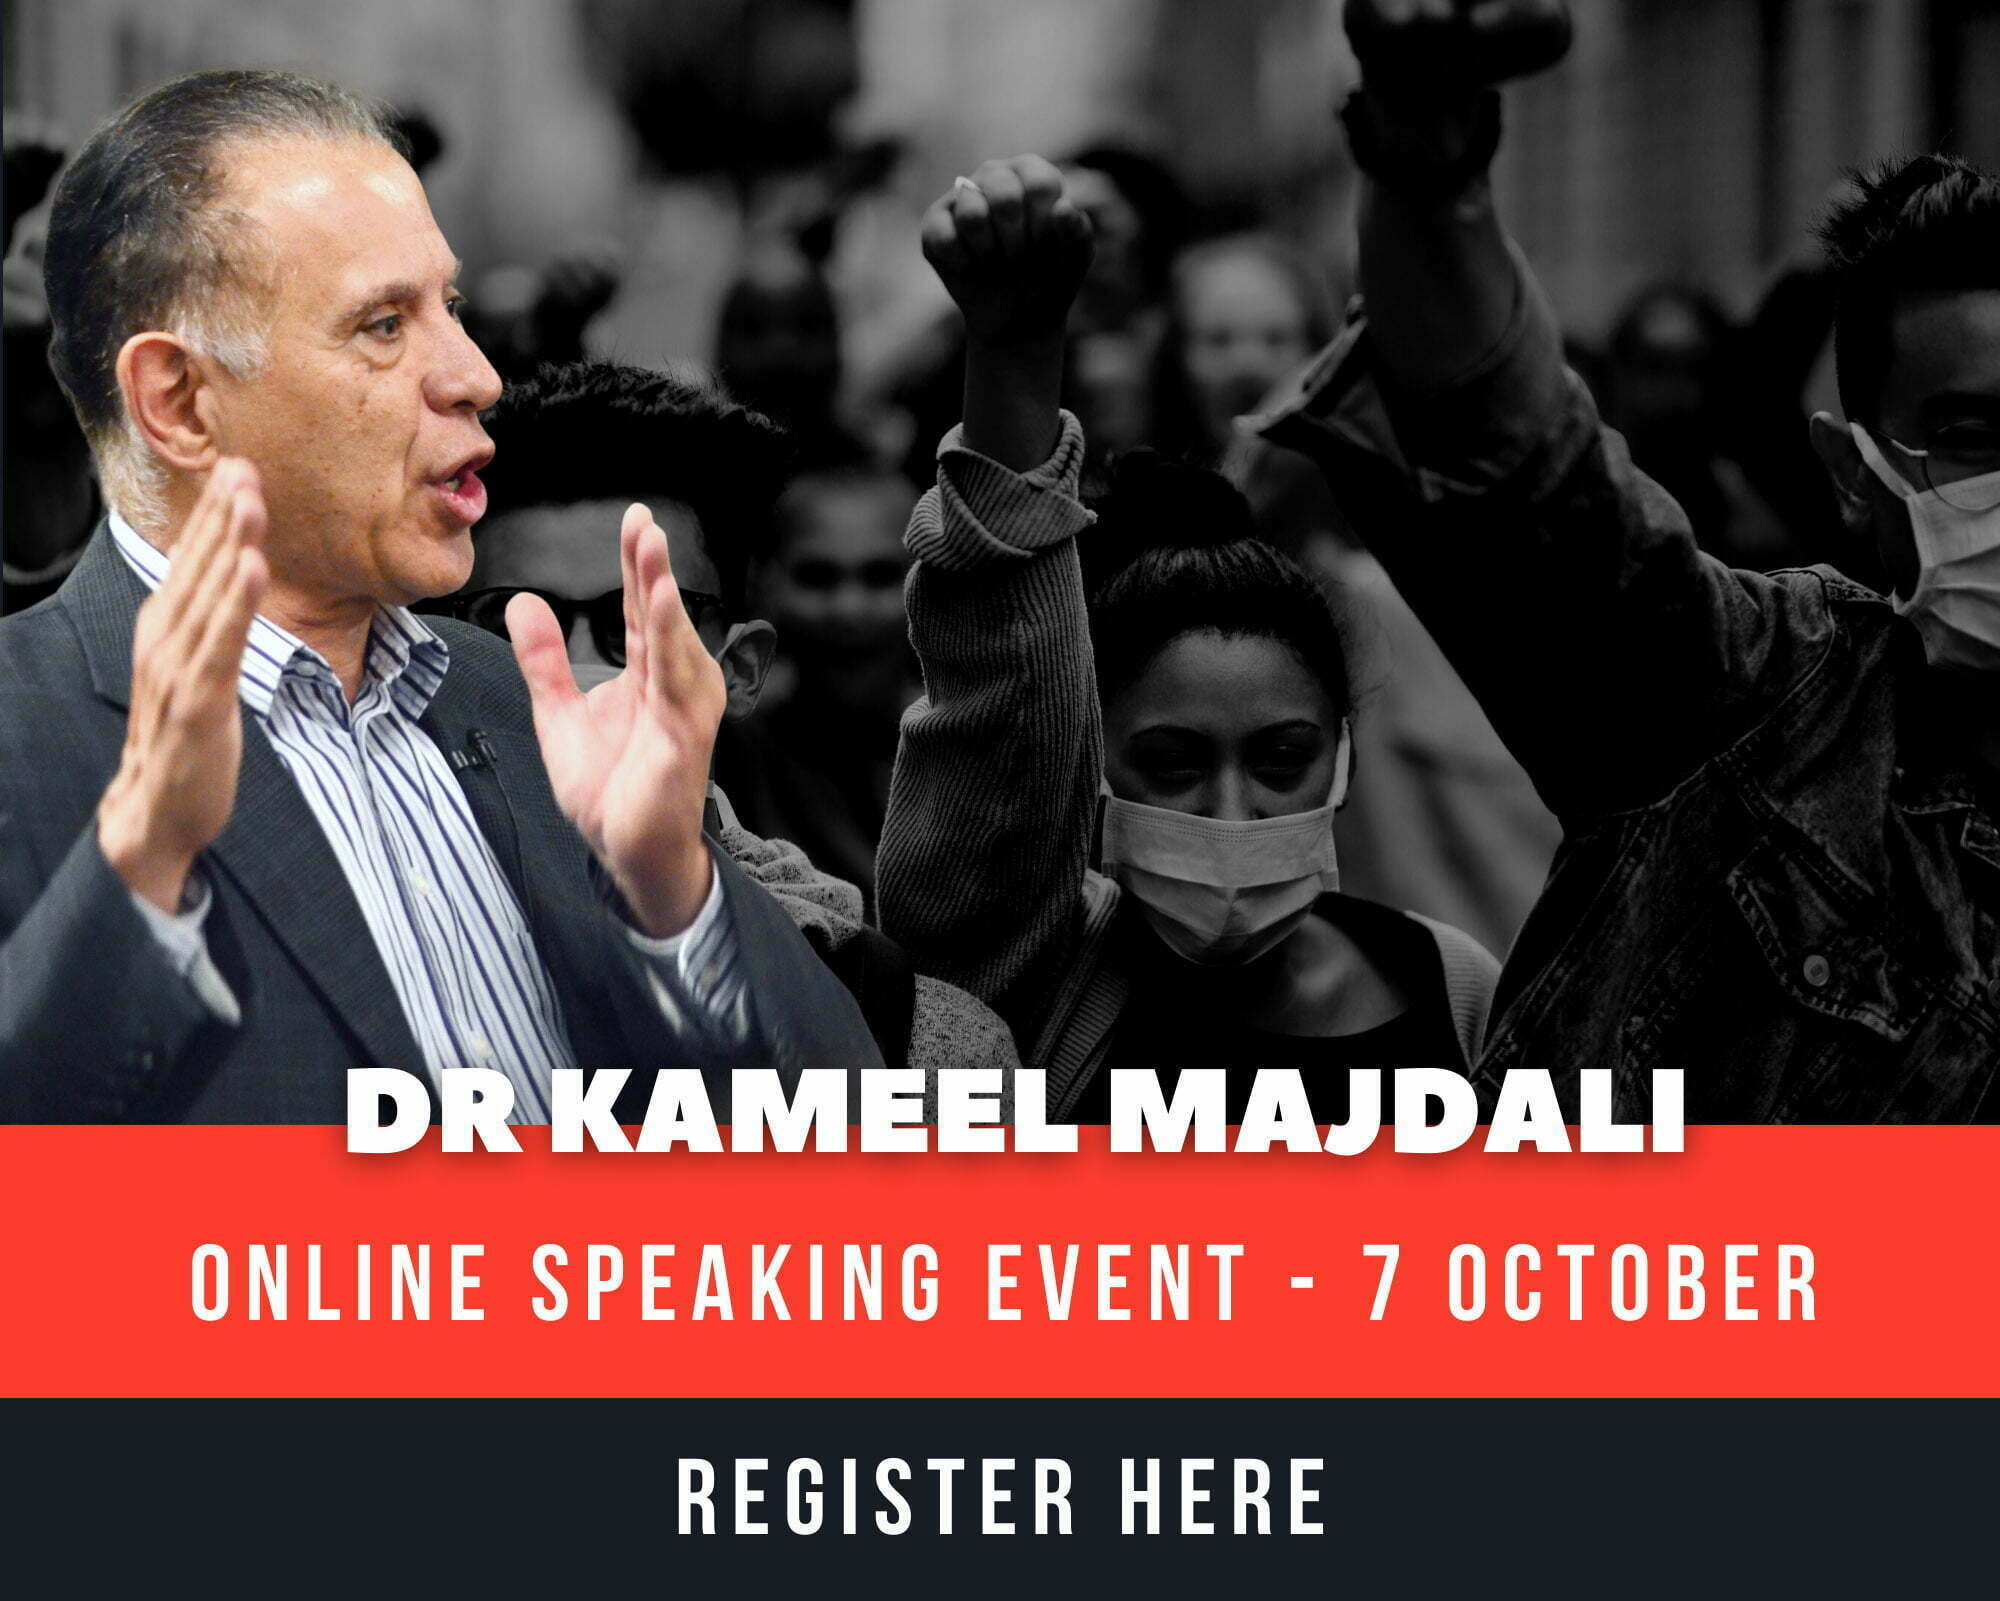 Dr Kameel Majdali Online Speaking Event